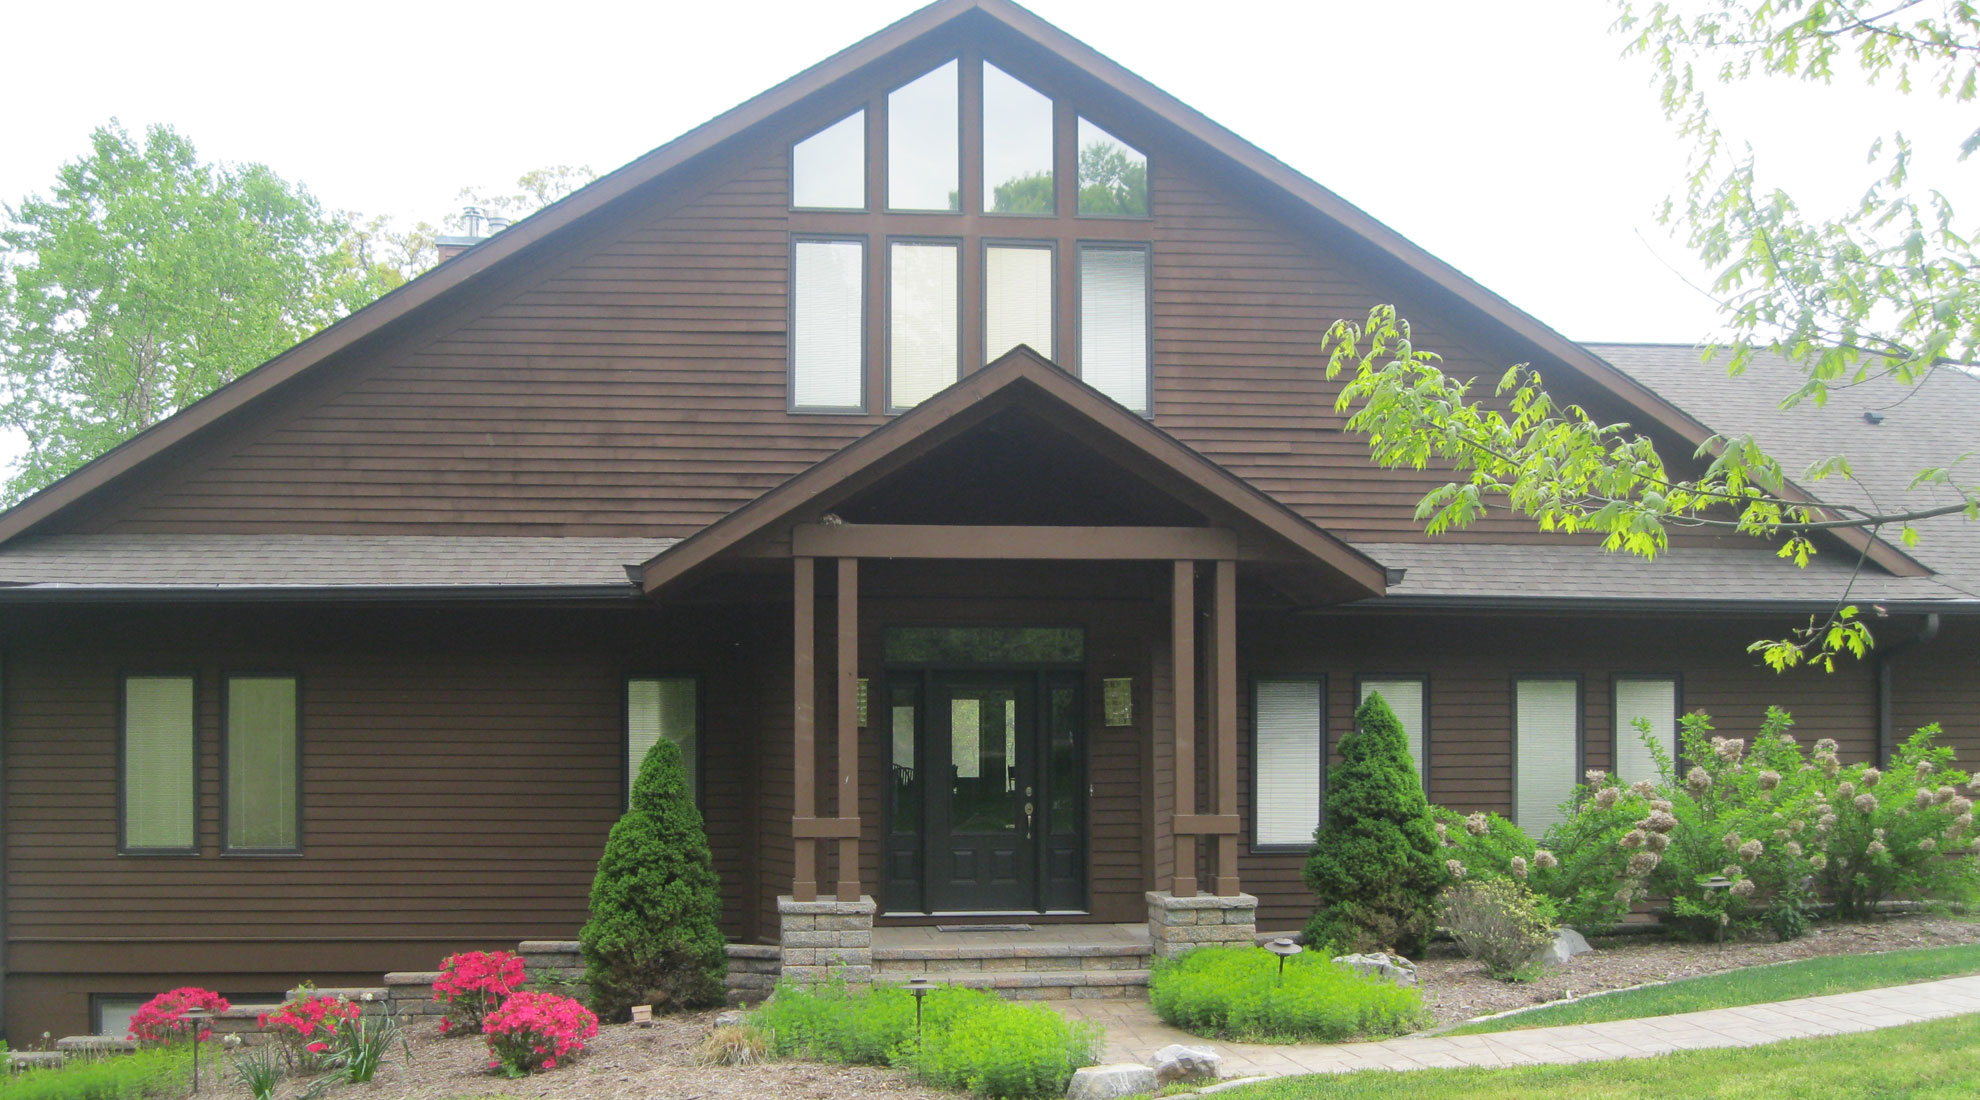 Central Illinois Architect Architects And Architect